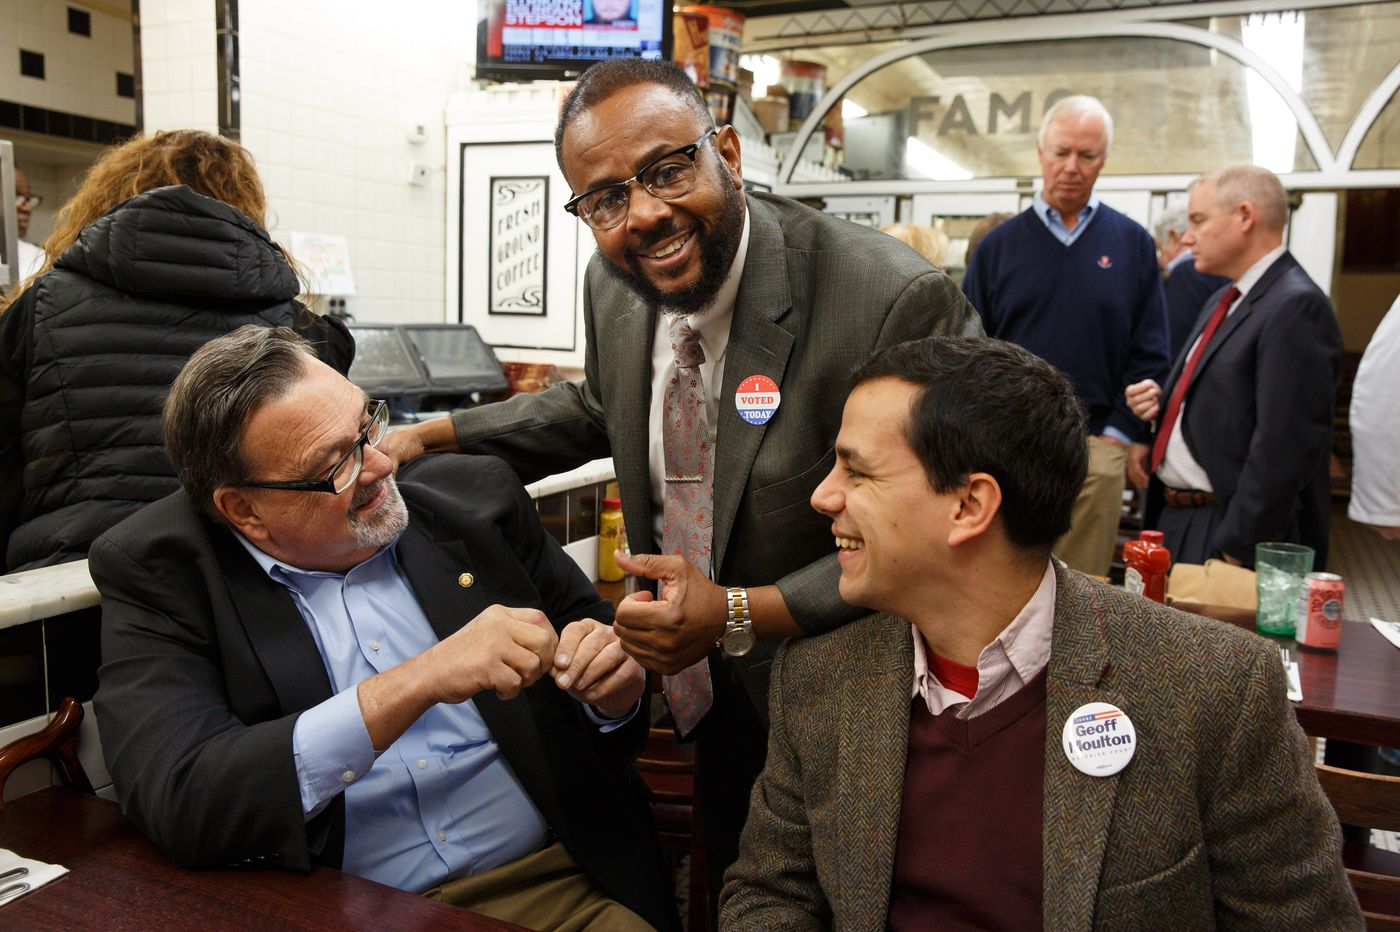 Democratic ward leaders pick State Rep. O'Brien's chief of staff to succeed him